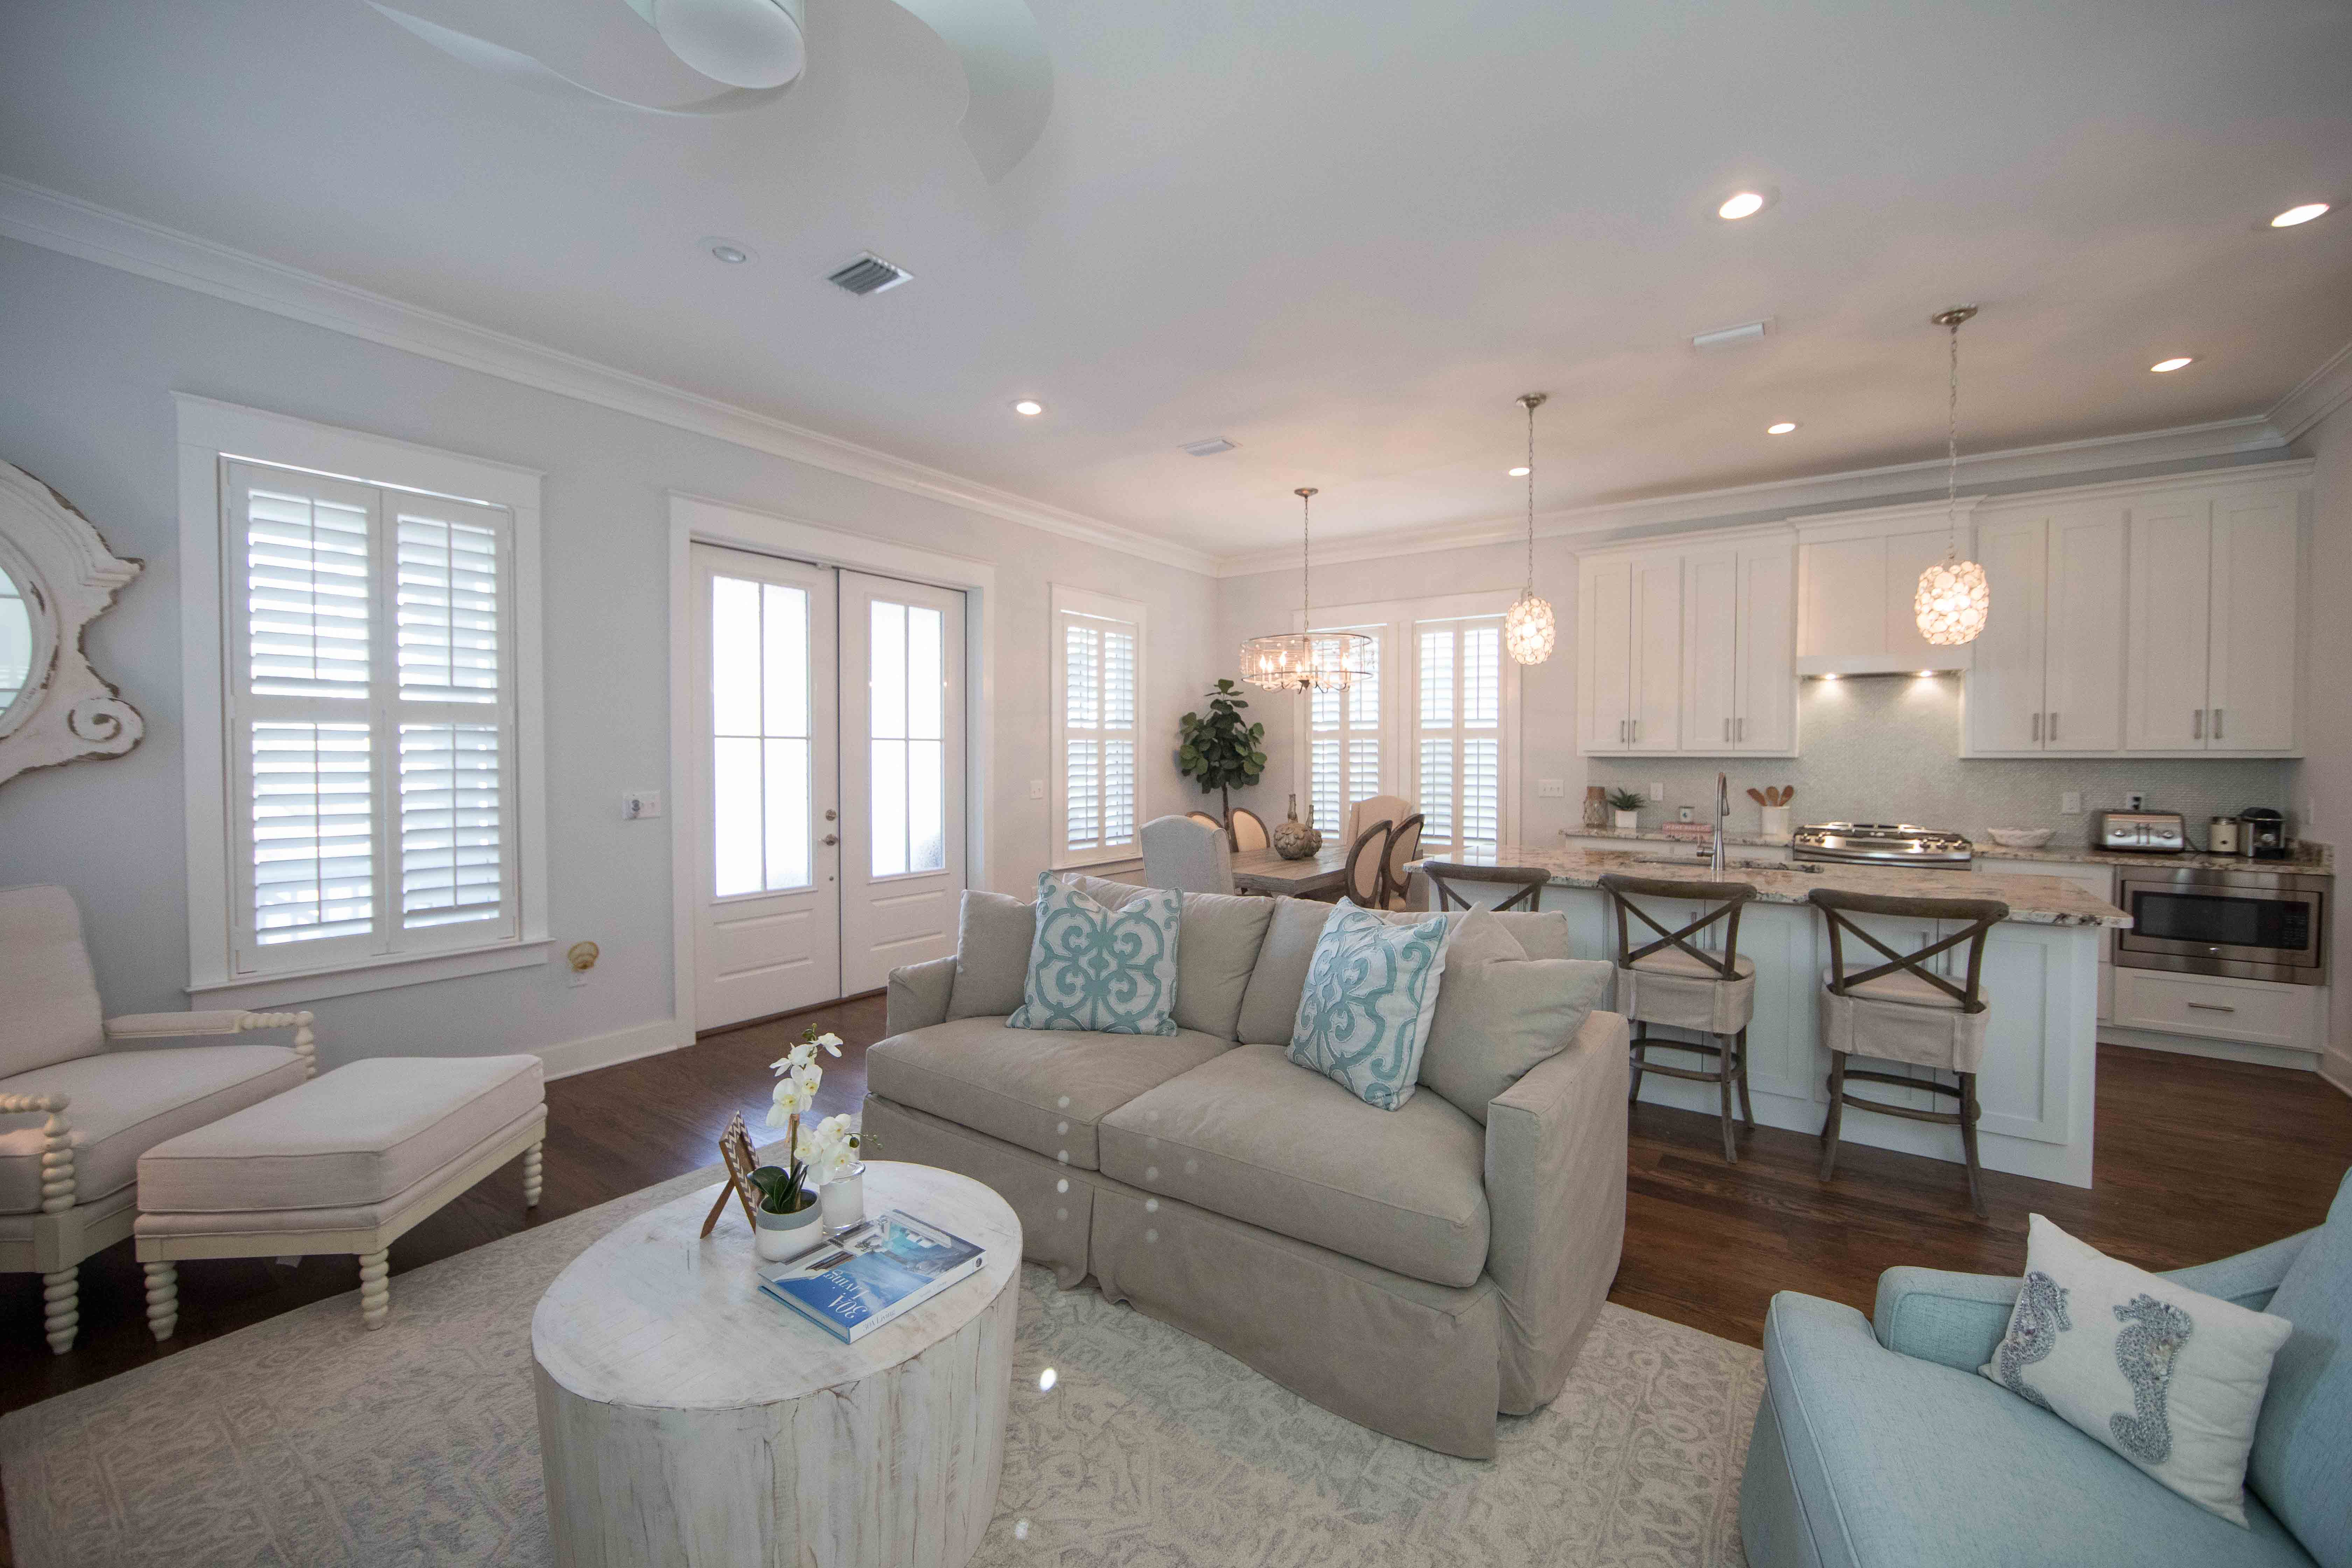 Open concept living, dining and kitchen area for creating forever memories with family and friends.